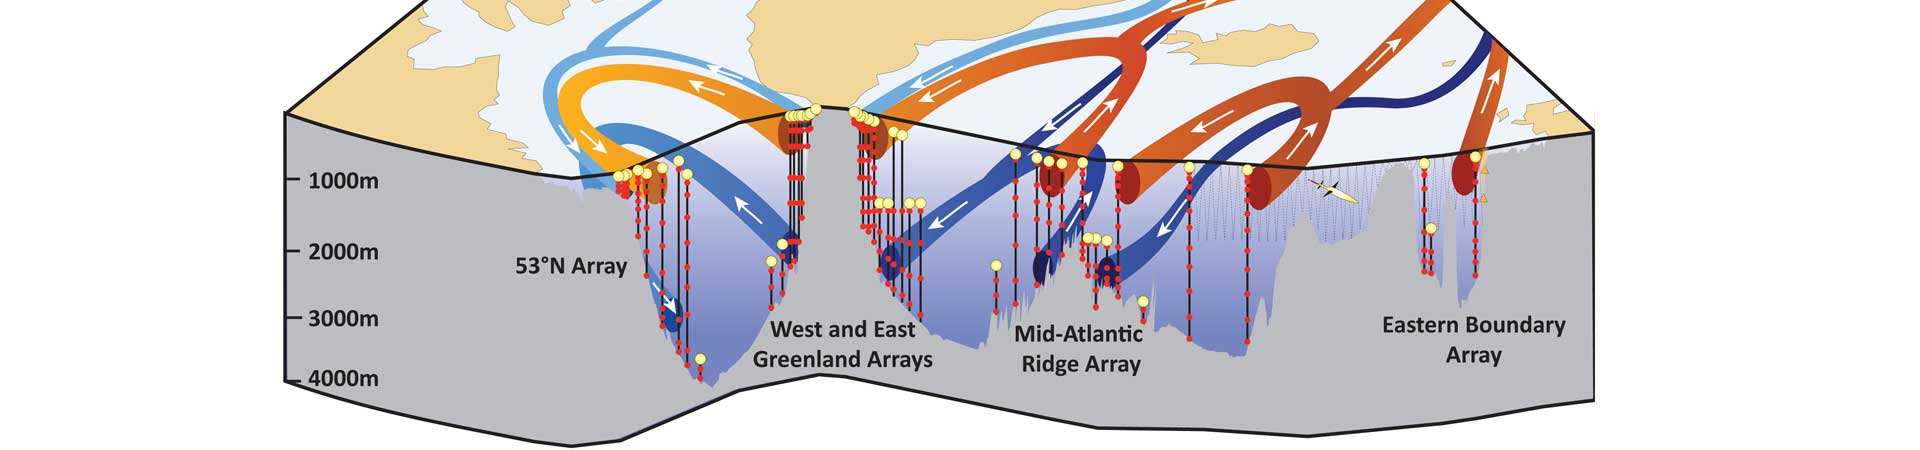 Digramme showing arrangement of oceanographic arrays to measure ocean circulation in the North Atlantic